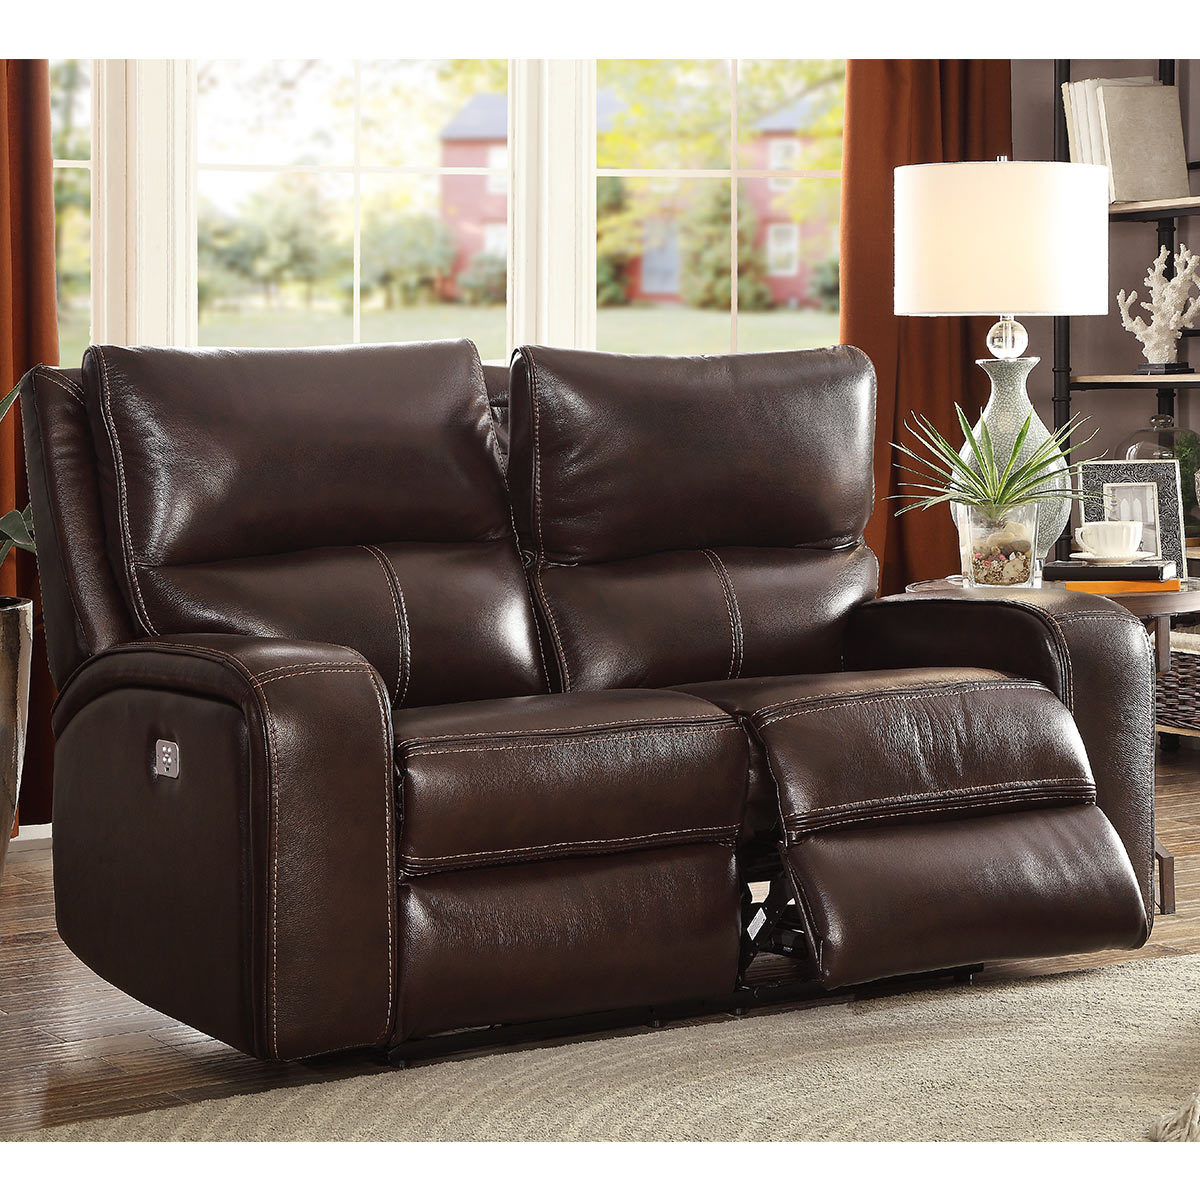 2 Seat Leather Reclining Sofa – Sofa Design Ideas Within Contempo Power Reclining Sofas (View 14 of 15)